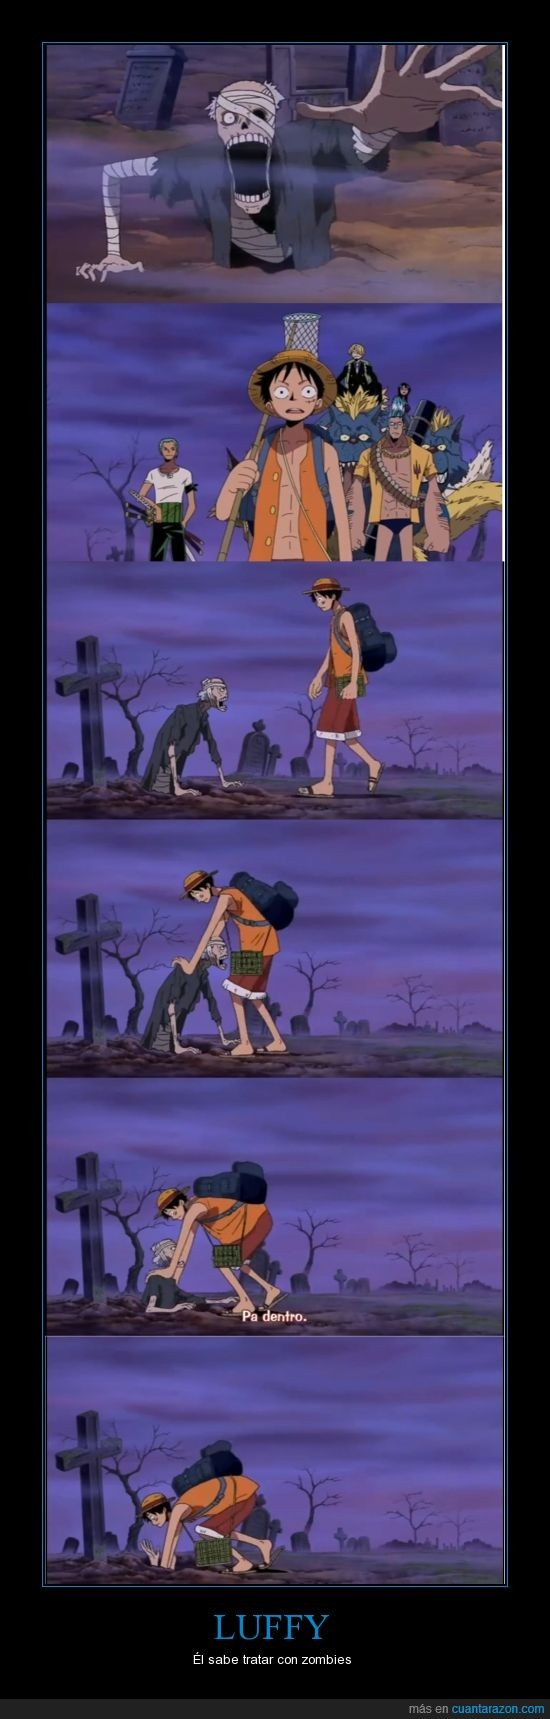 Apocalipsis Zombie,Luffy,One Piece,Zombie